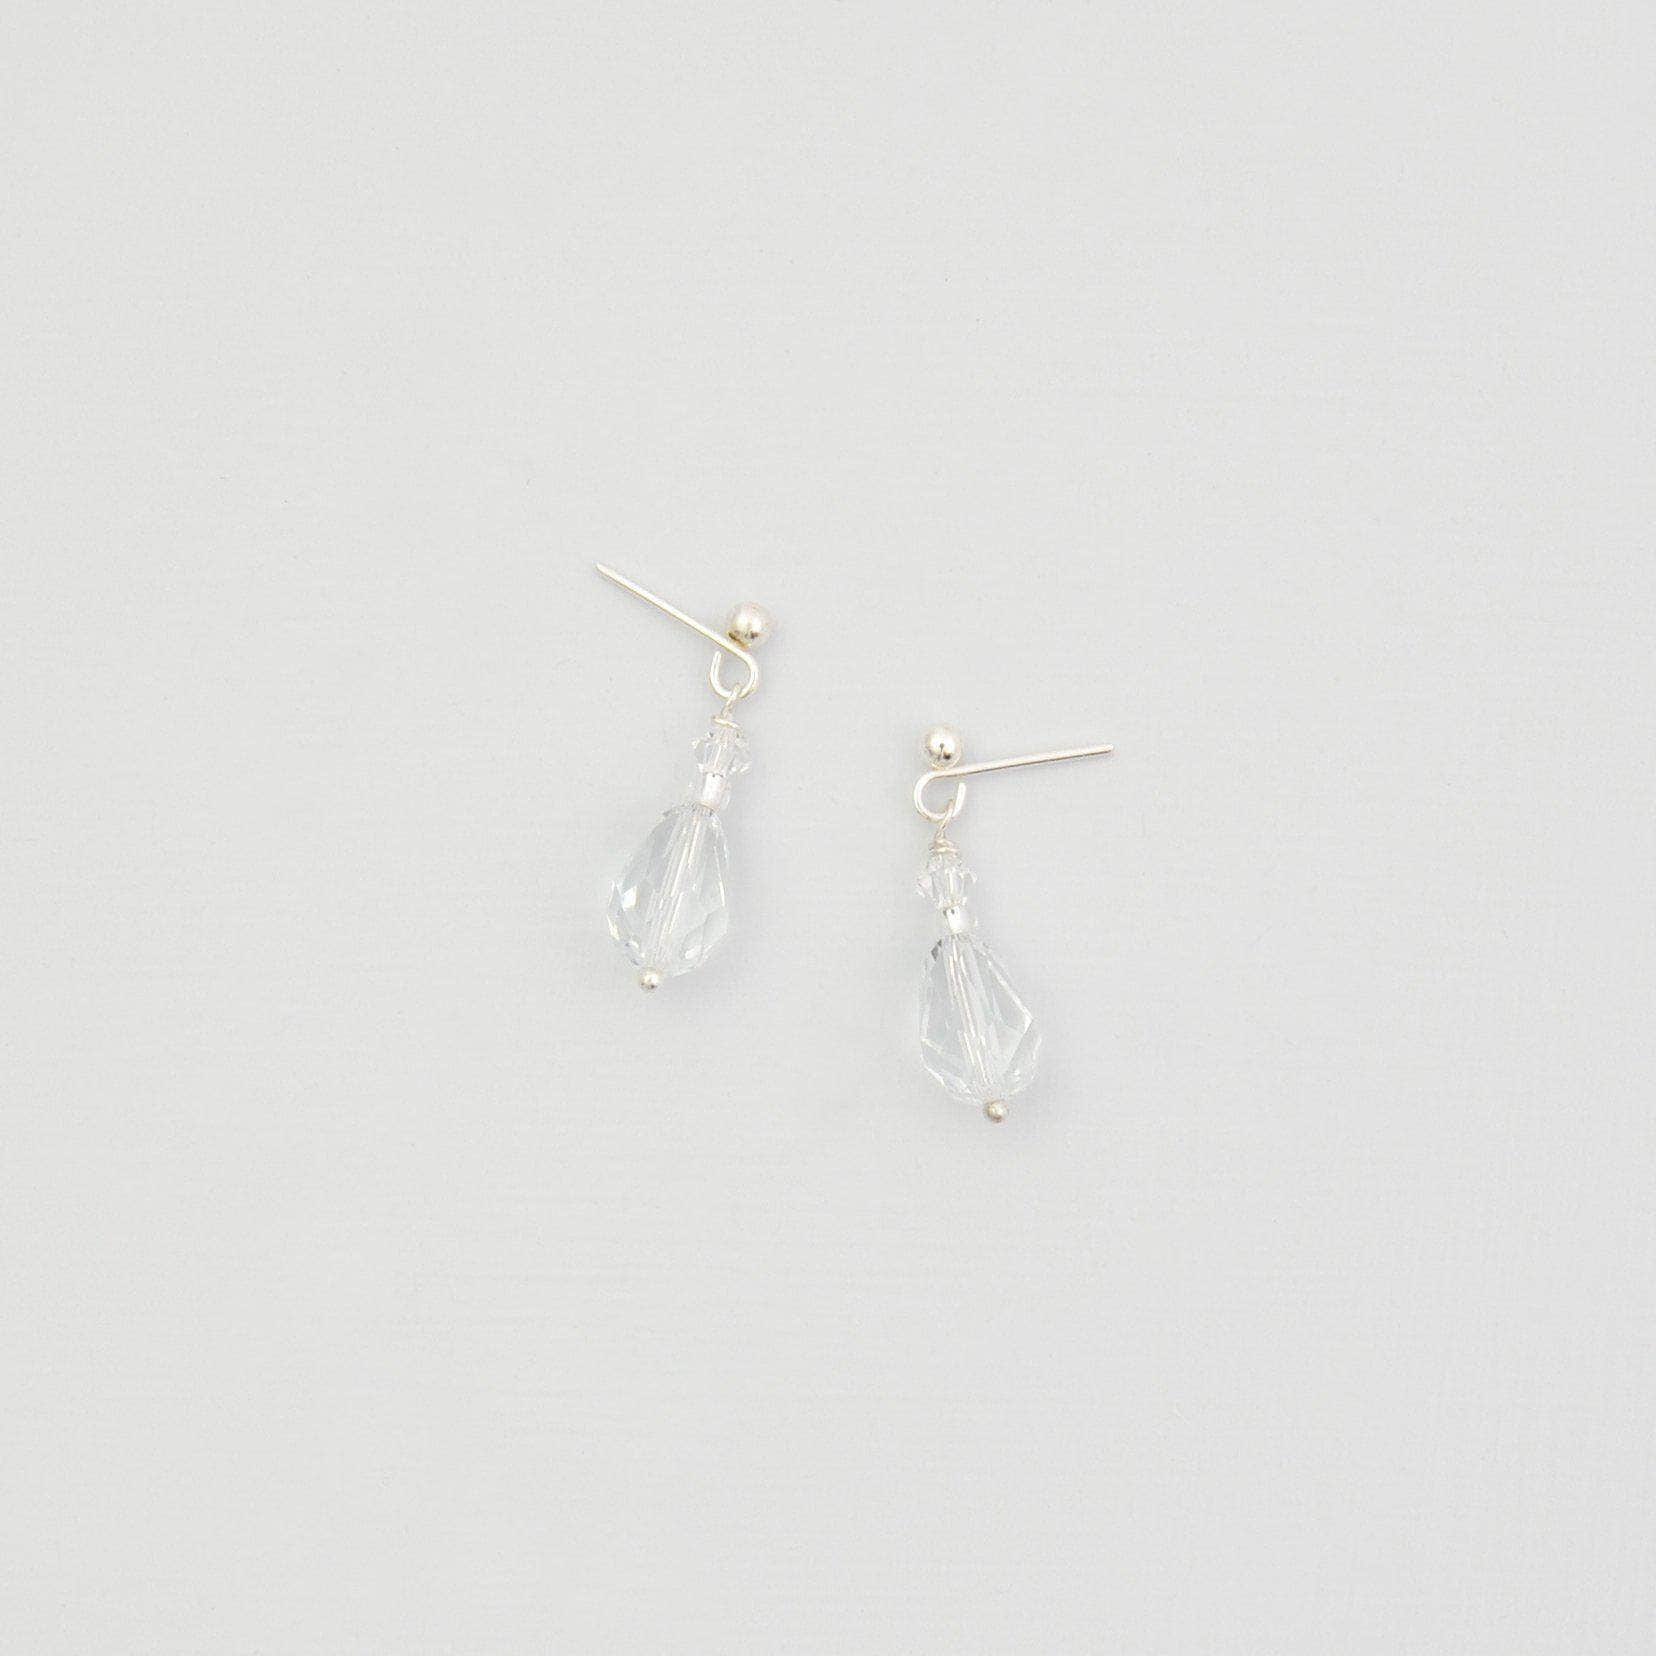 Wedding Earring Silver Crystal drop wedding earrings - 'Tia'